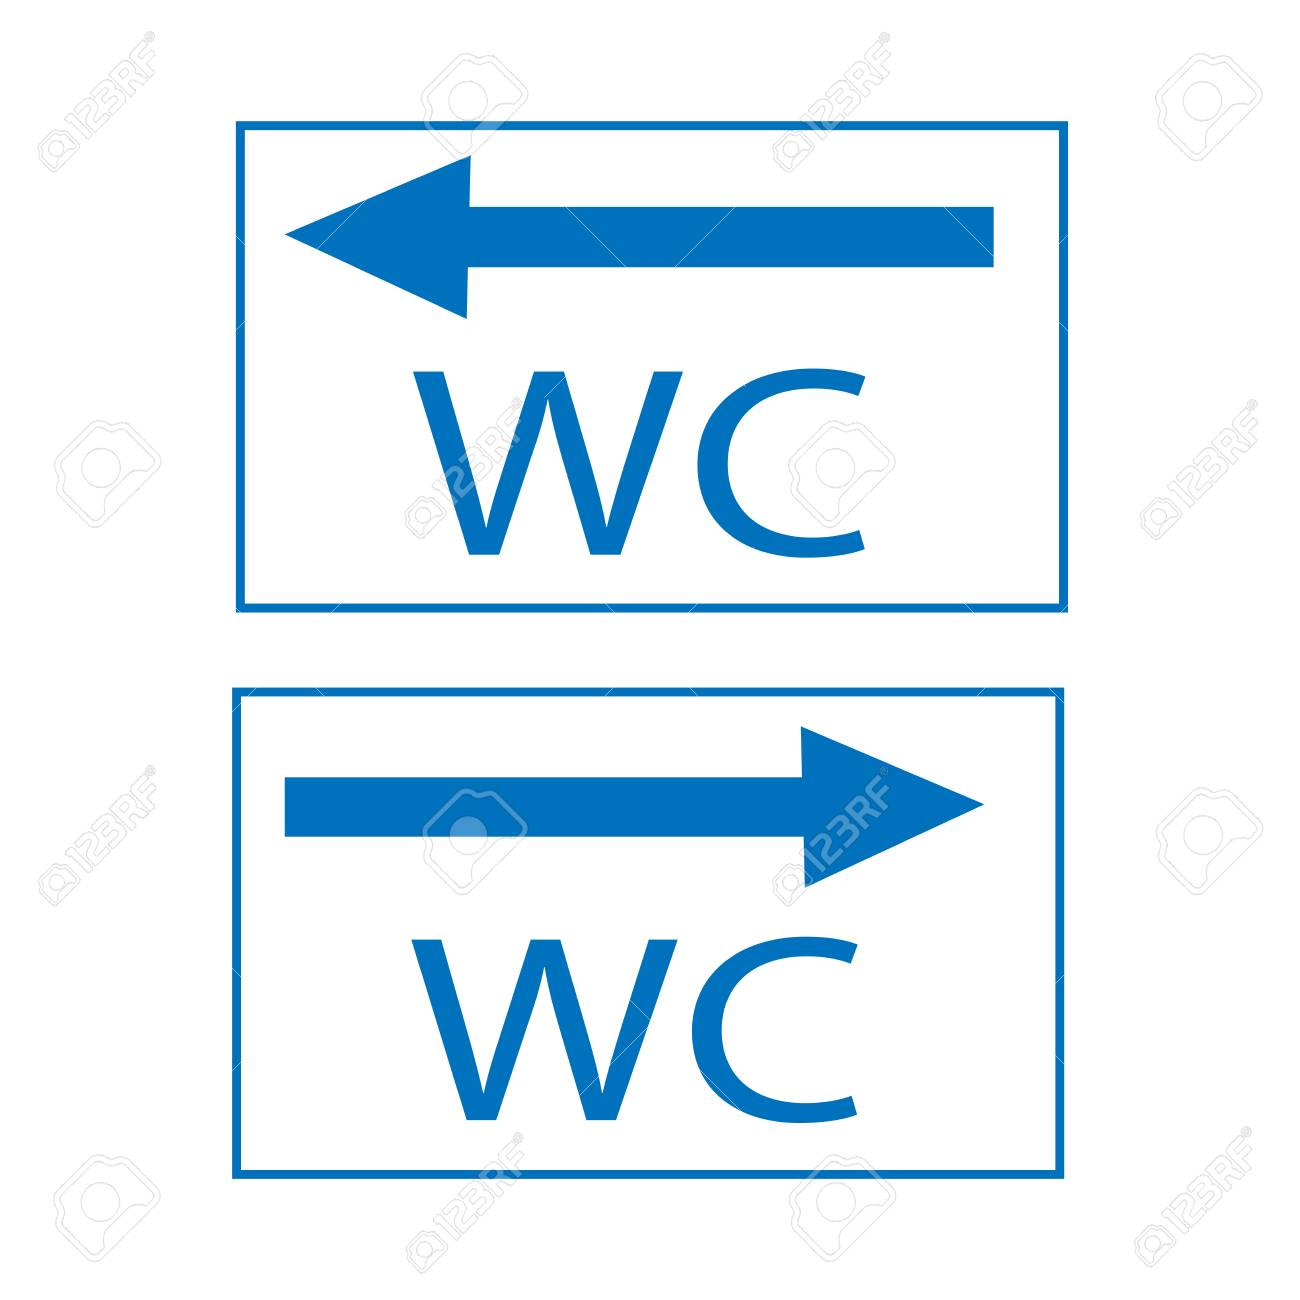 WC Icon And Arrow Right Left In Blue Square On White Background